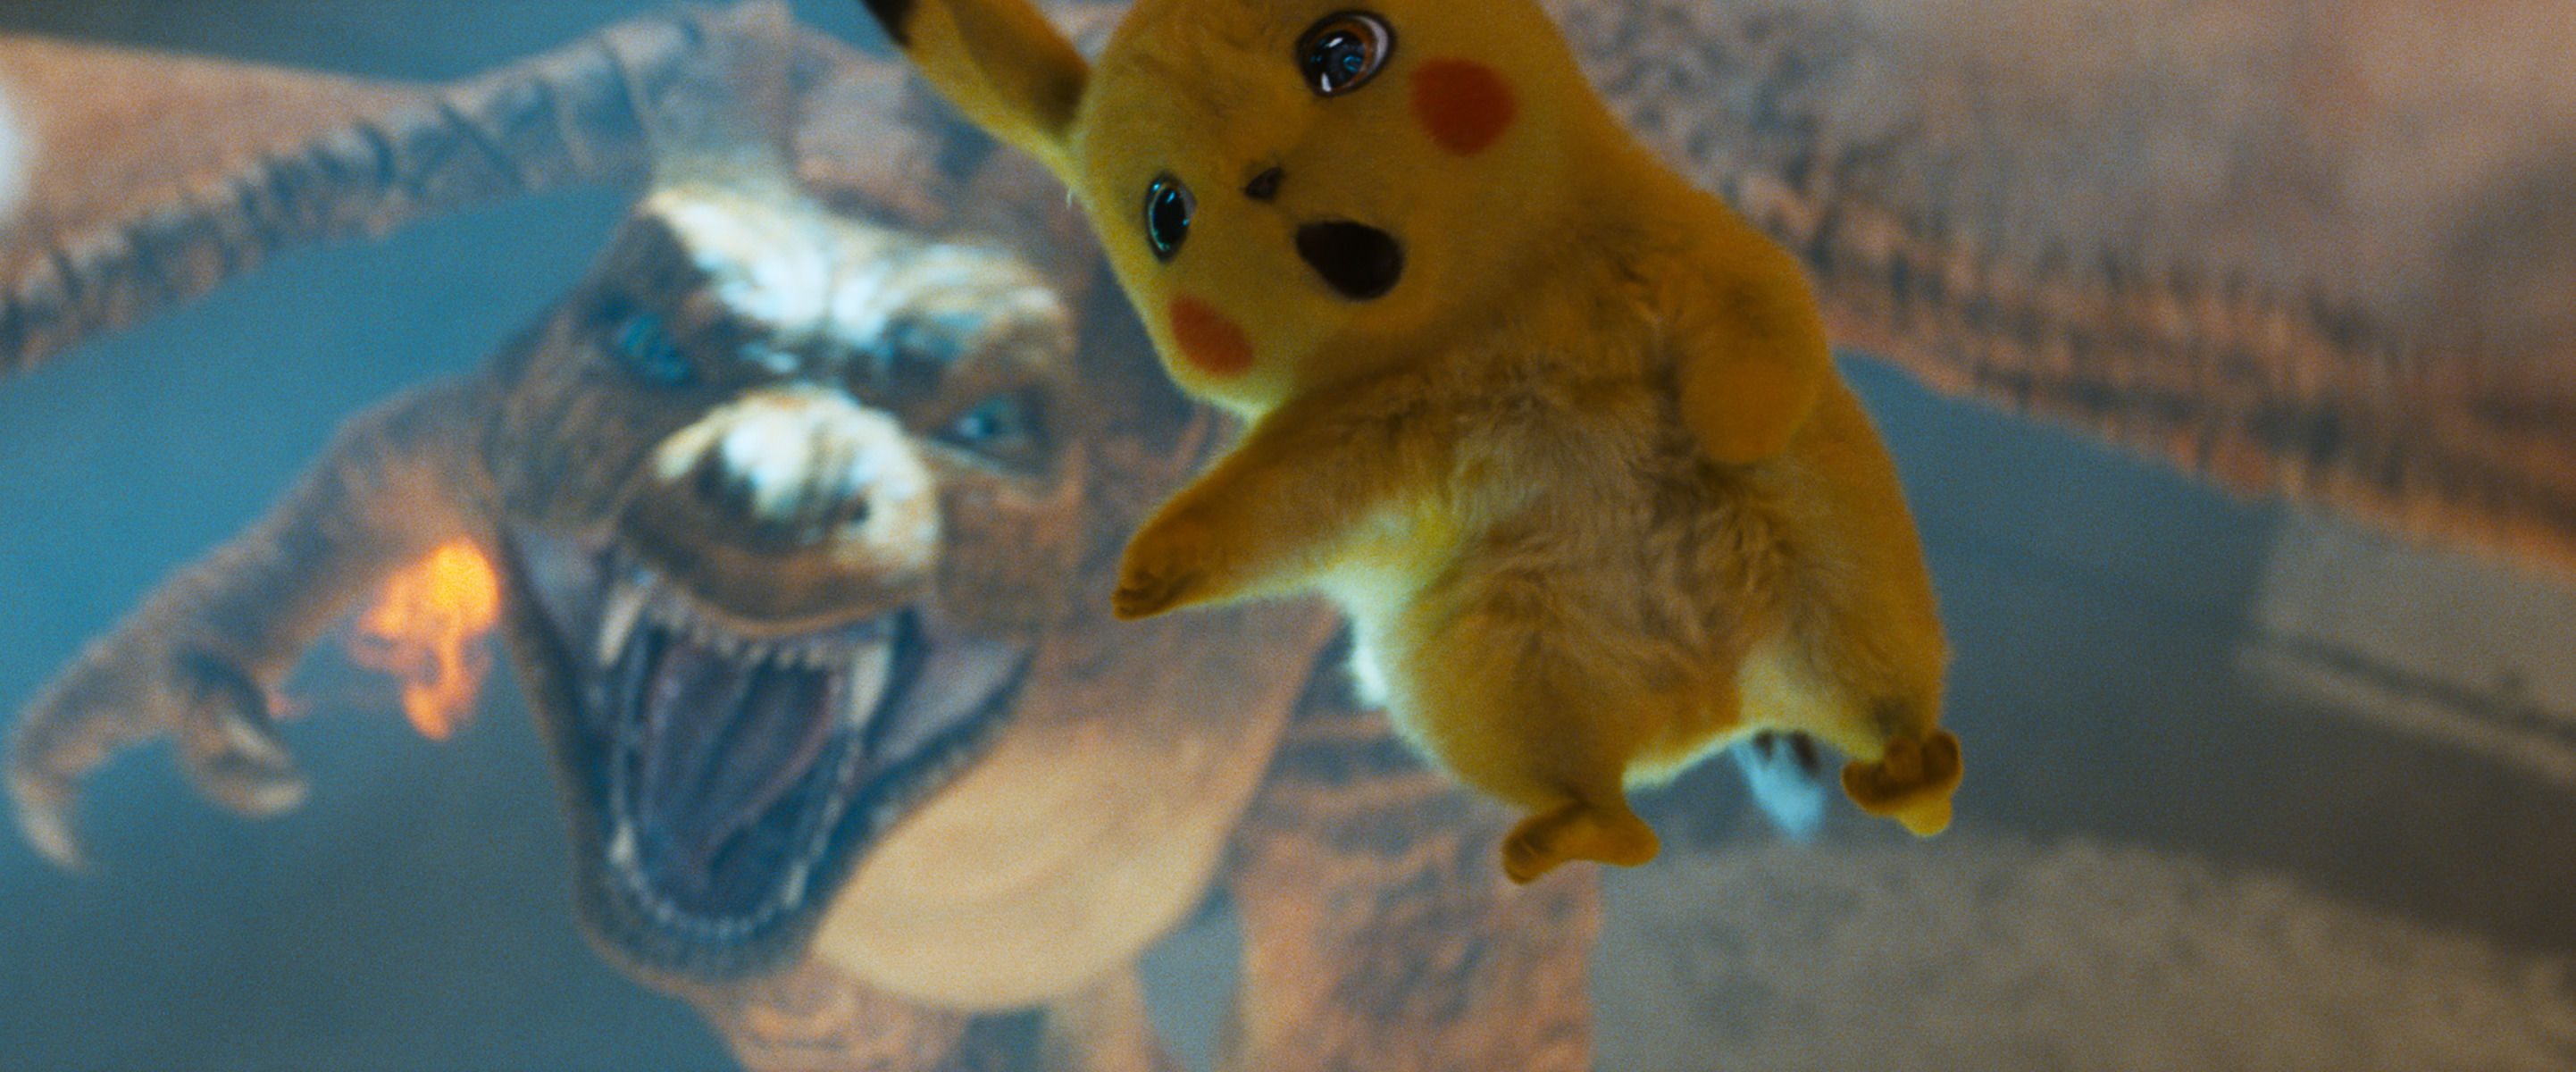 Netflix wants to be the very best with live-action 'Pokemon' series from 'Lucifer' showrunner